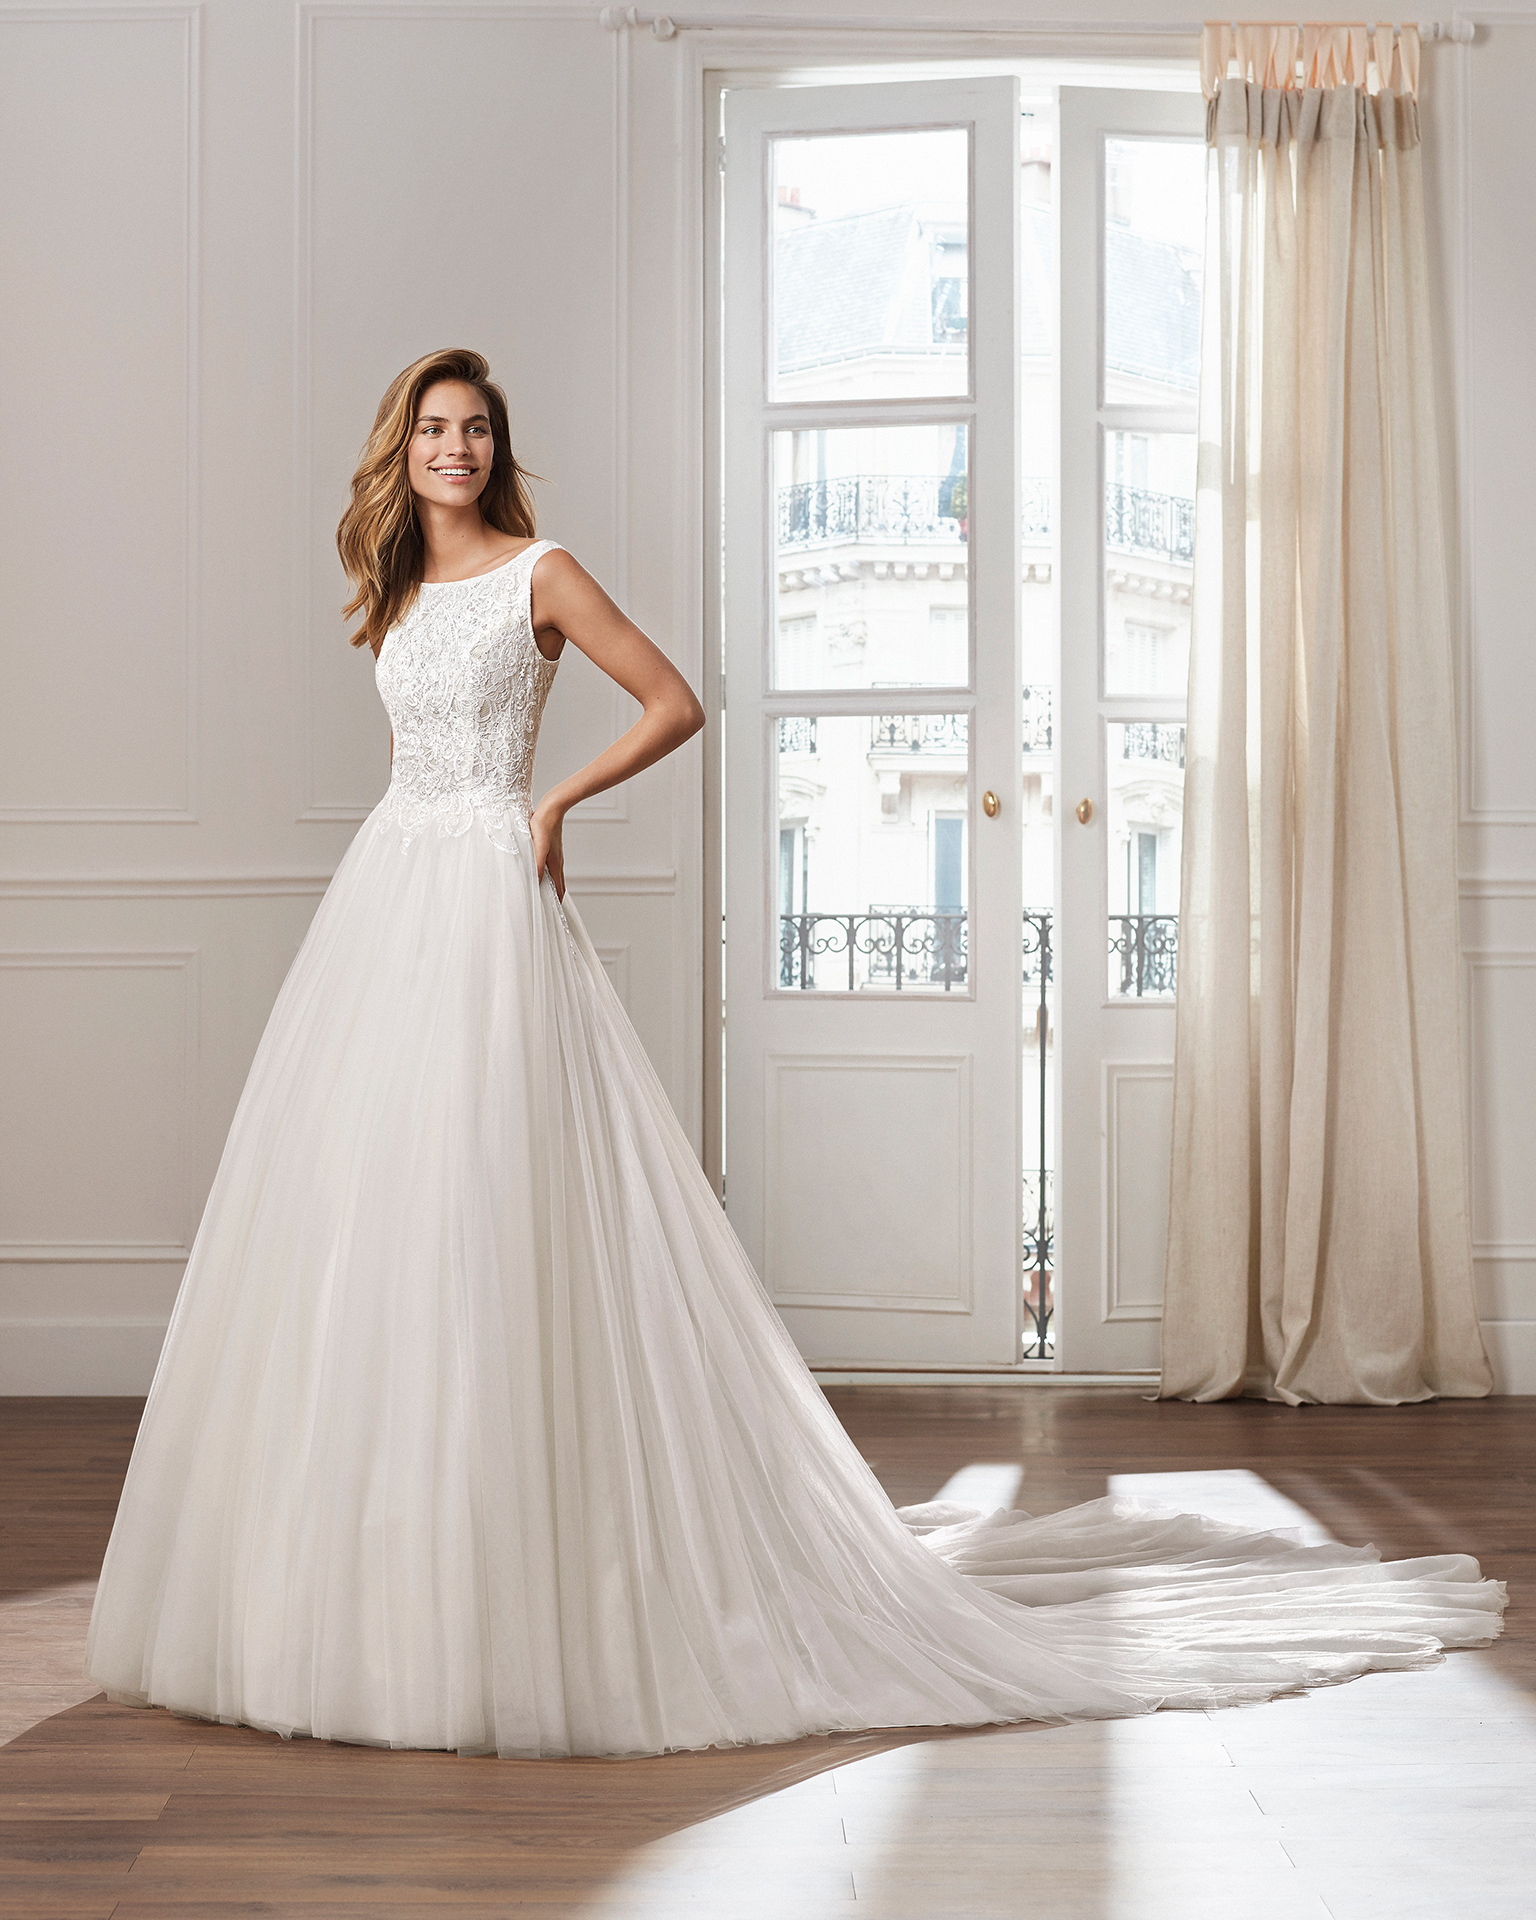 Tulle princess-style wedding dress. Bateau neckline, beaded lace bodice and ballgown-style skirt. Available in natural and ivory. 2019  Collection.